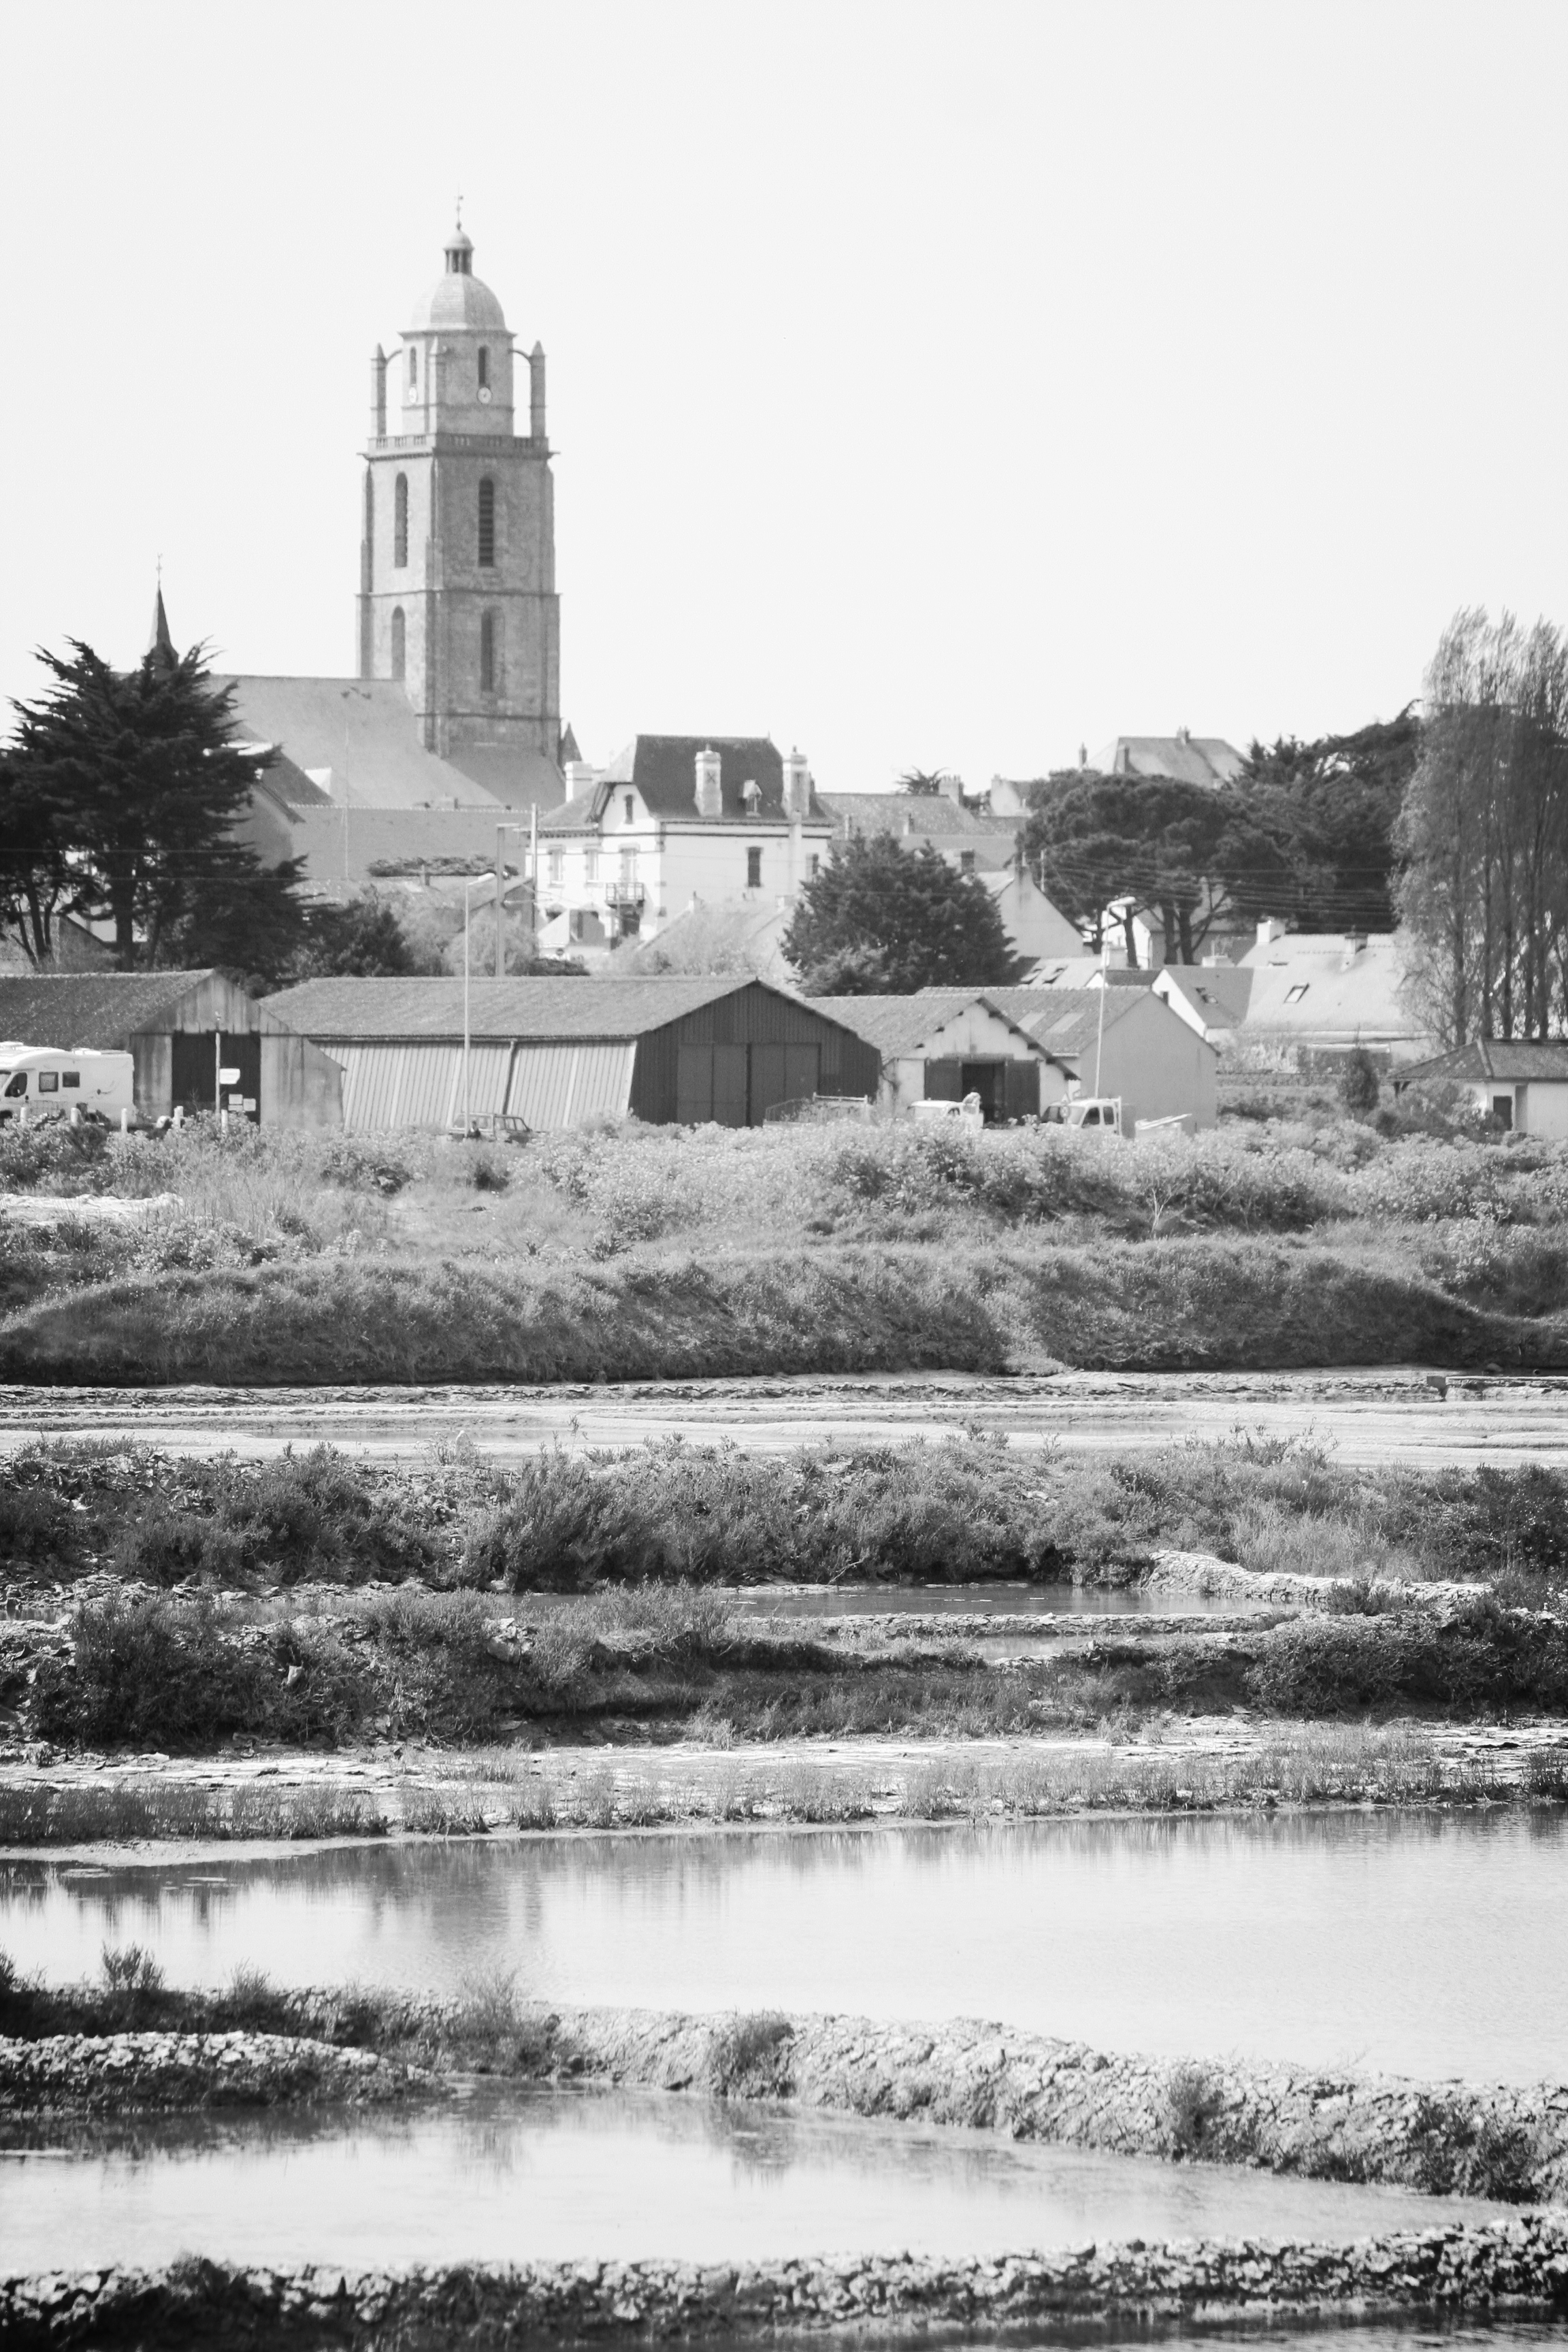 The Bourg de Batz belltower, icon of Batz sea salt, dominates Guérande's salt marches.